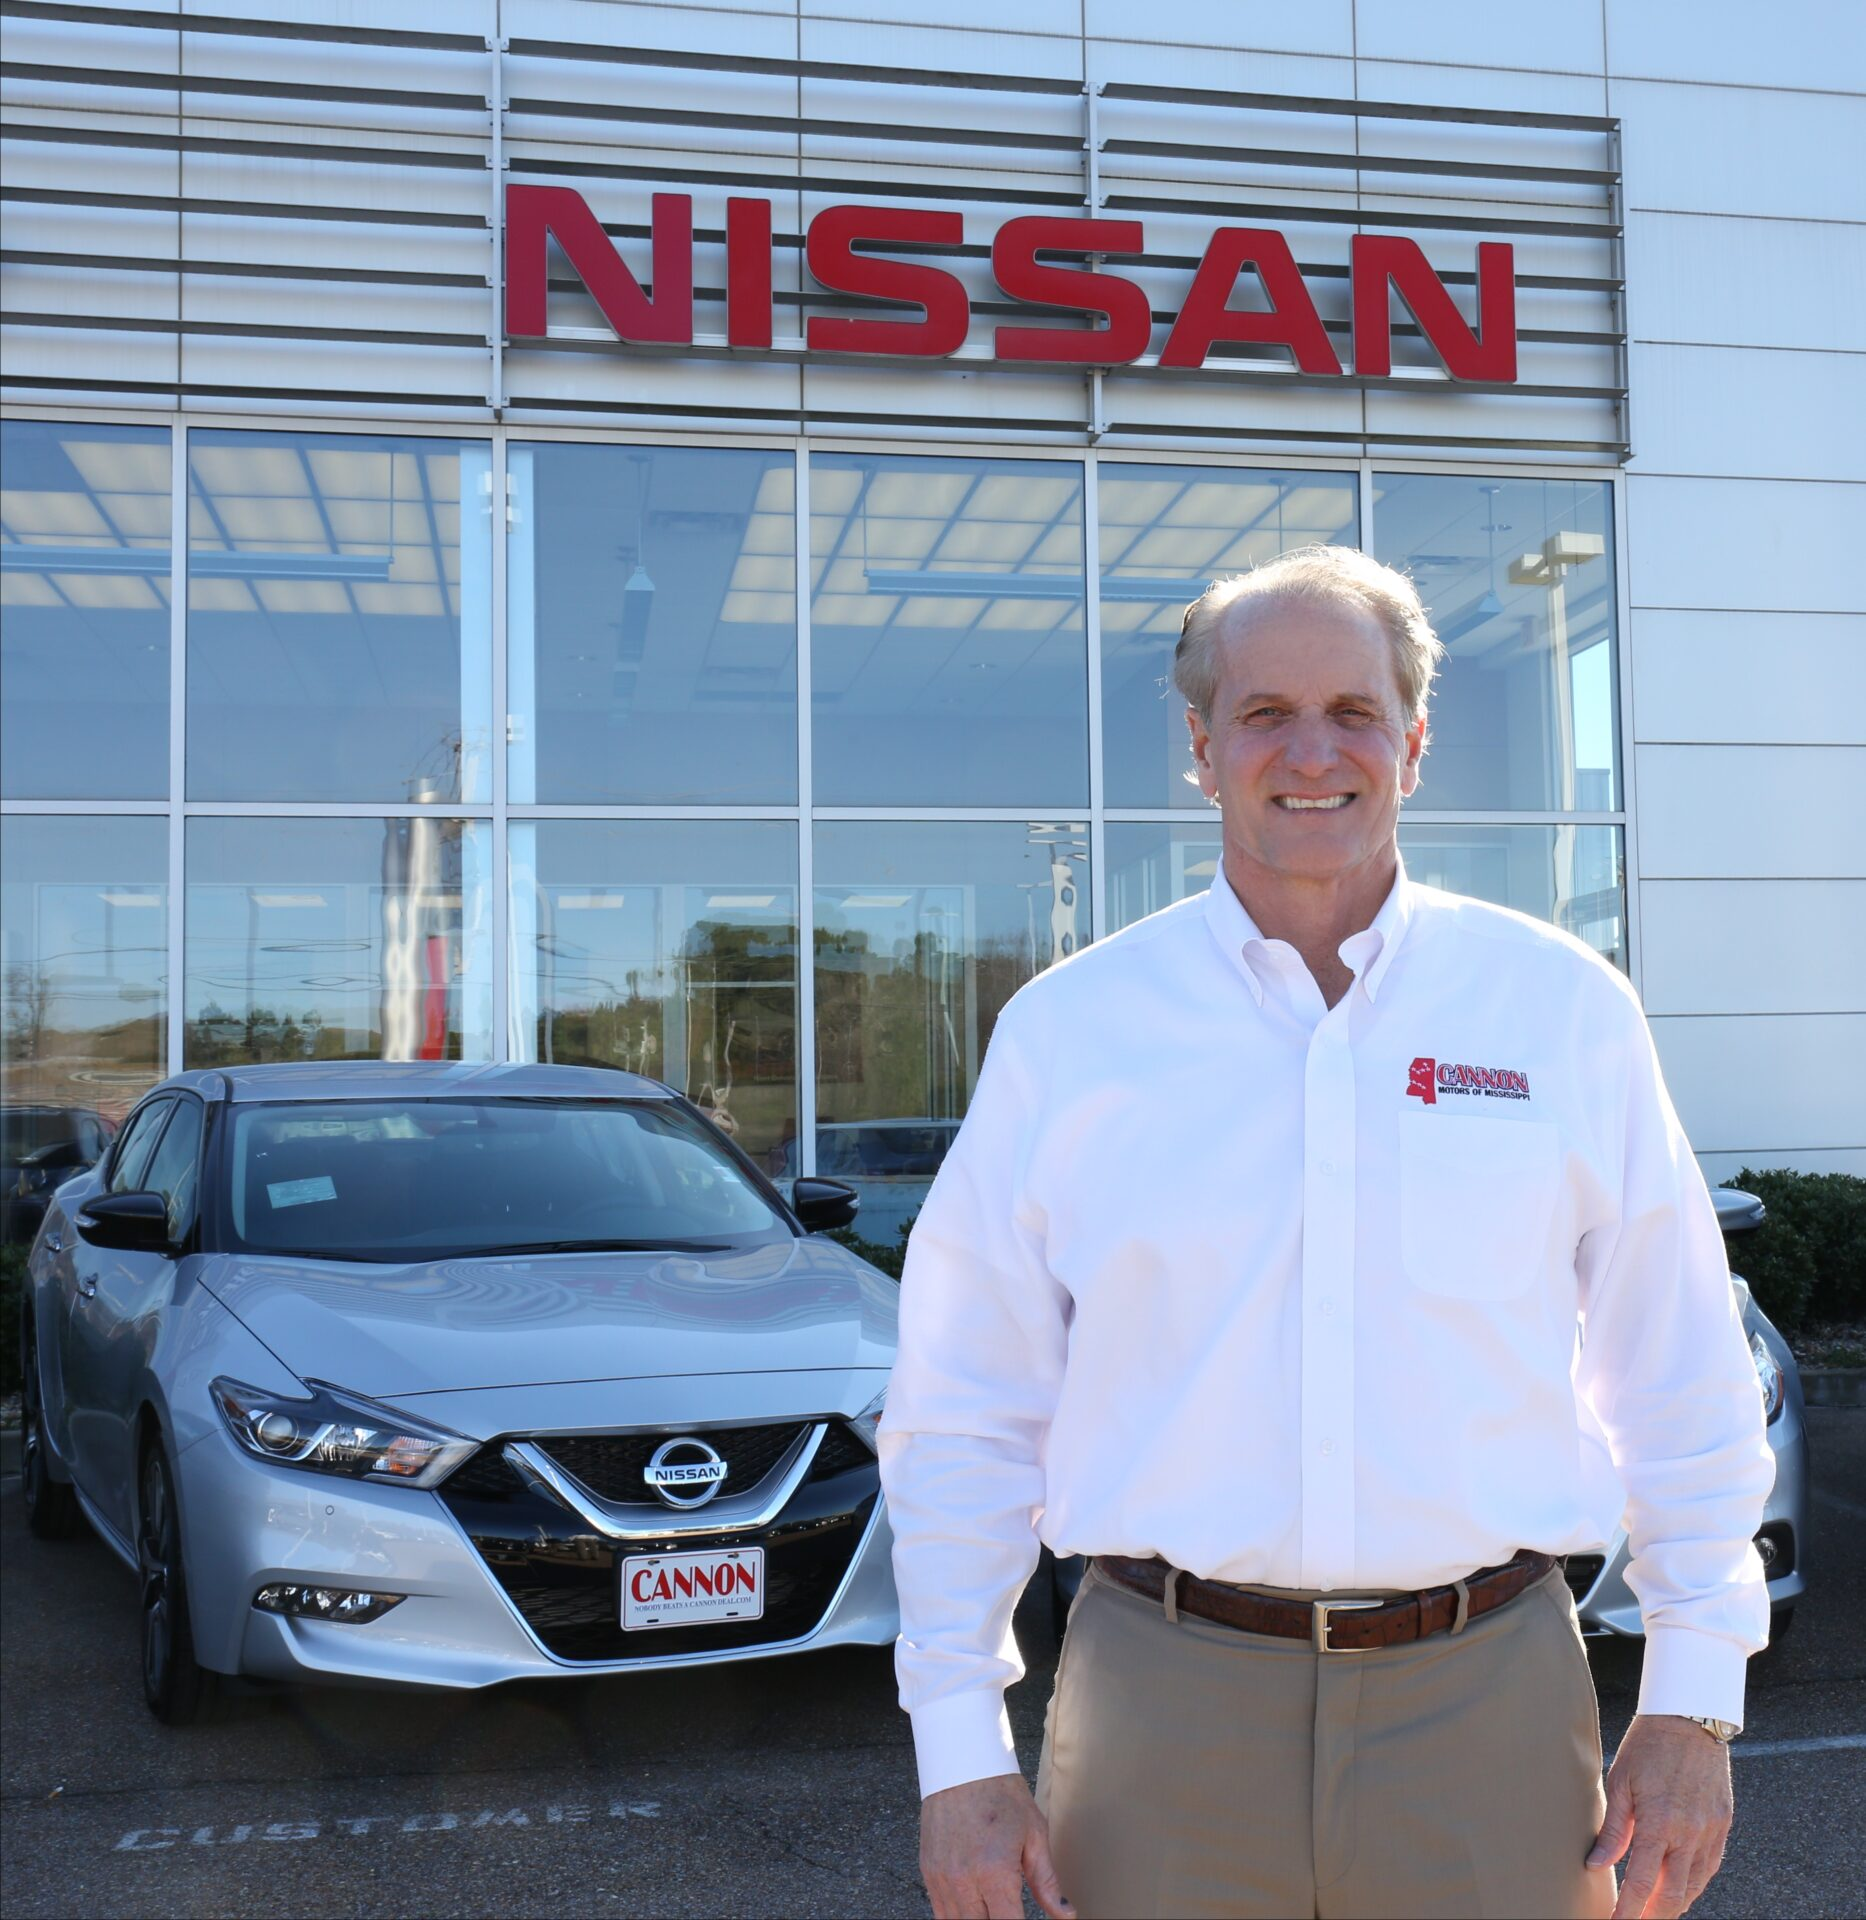 Cannon motors of mississippi acquires chandler nissan in for Cannon motor company jackson ms